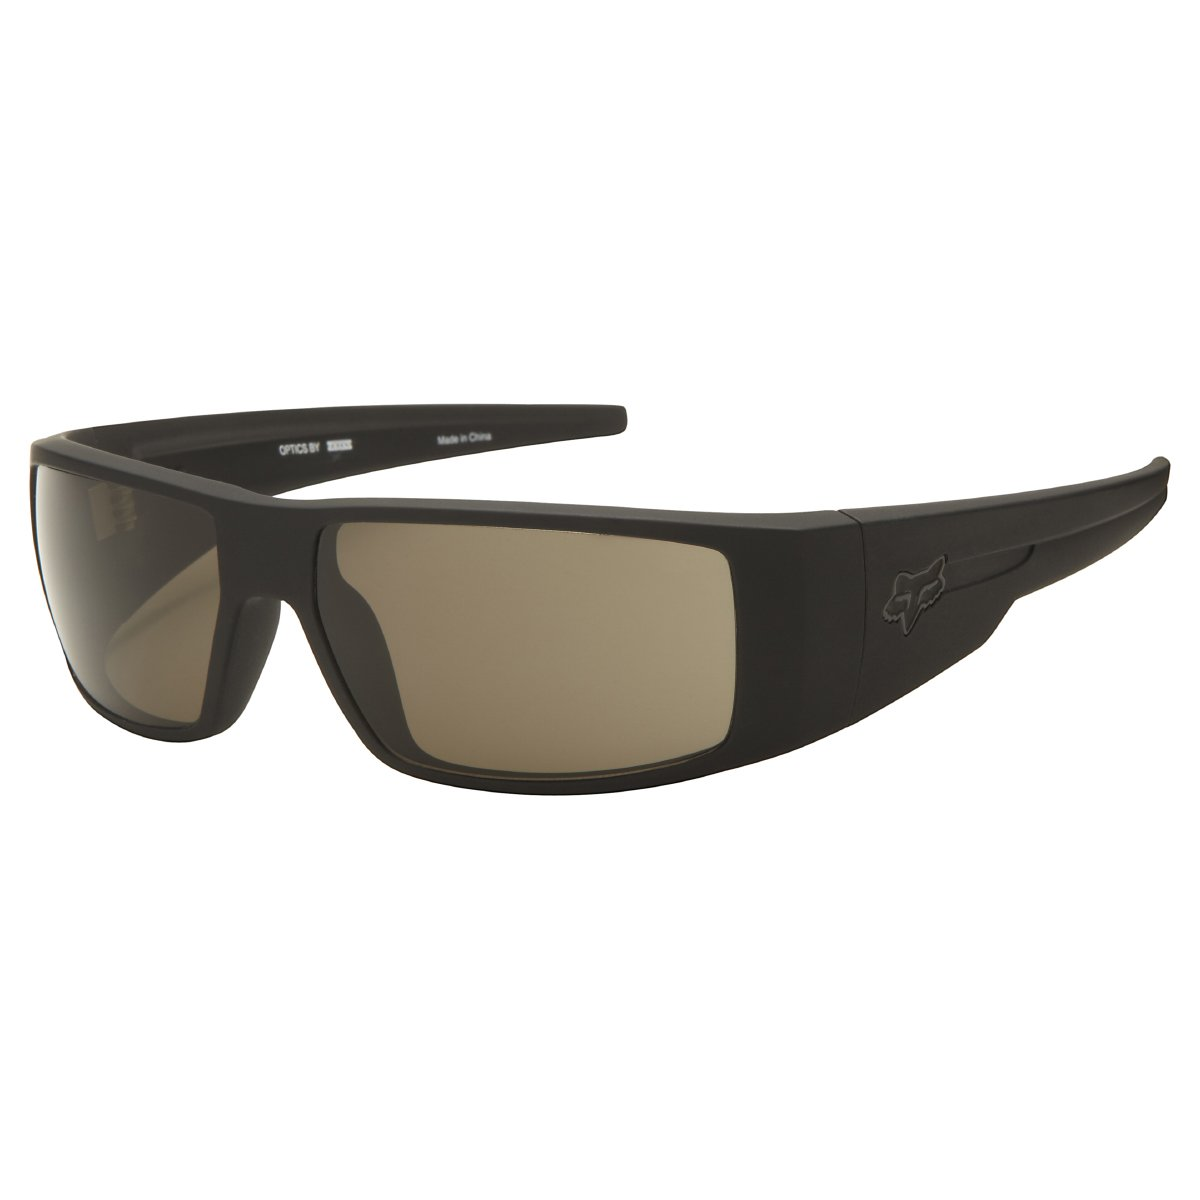 Fox The Condition 06323-905-OS Rectangular Sunglasses Matte Black /& Warm Grey 59 mm Fox Sunglasses Fox Head Inc.